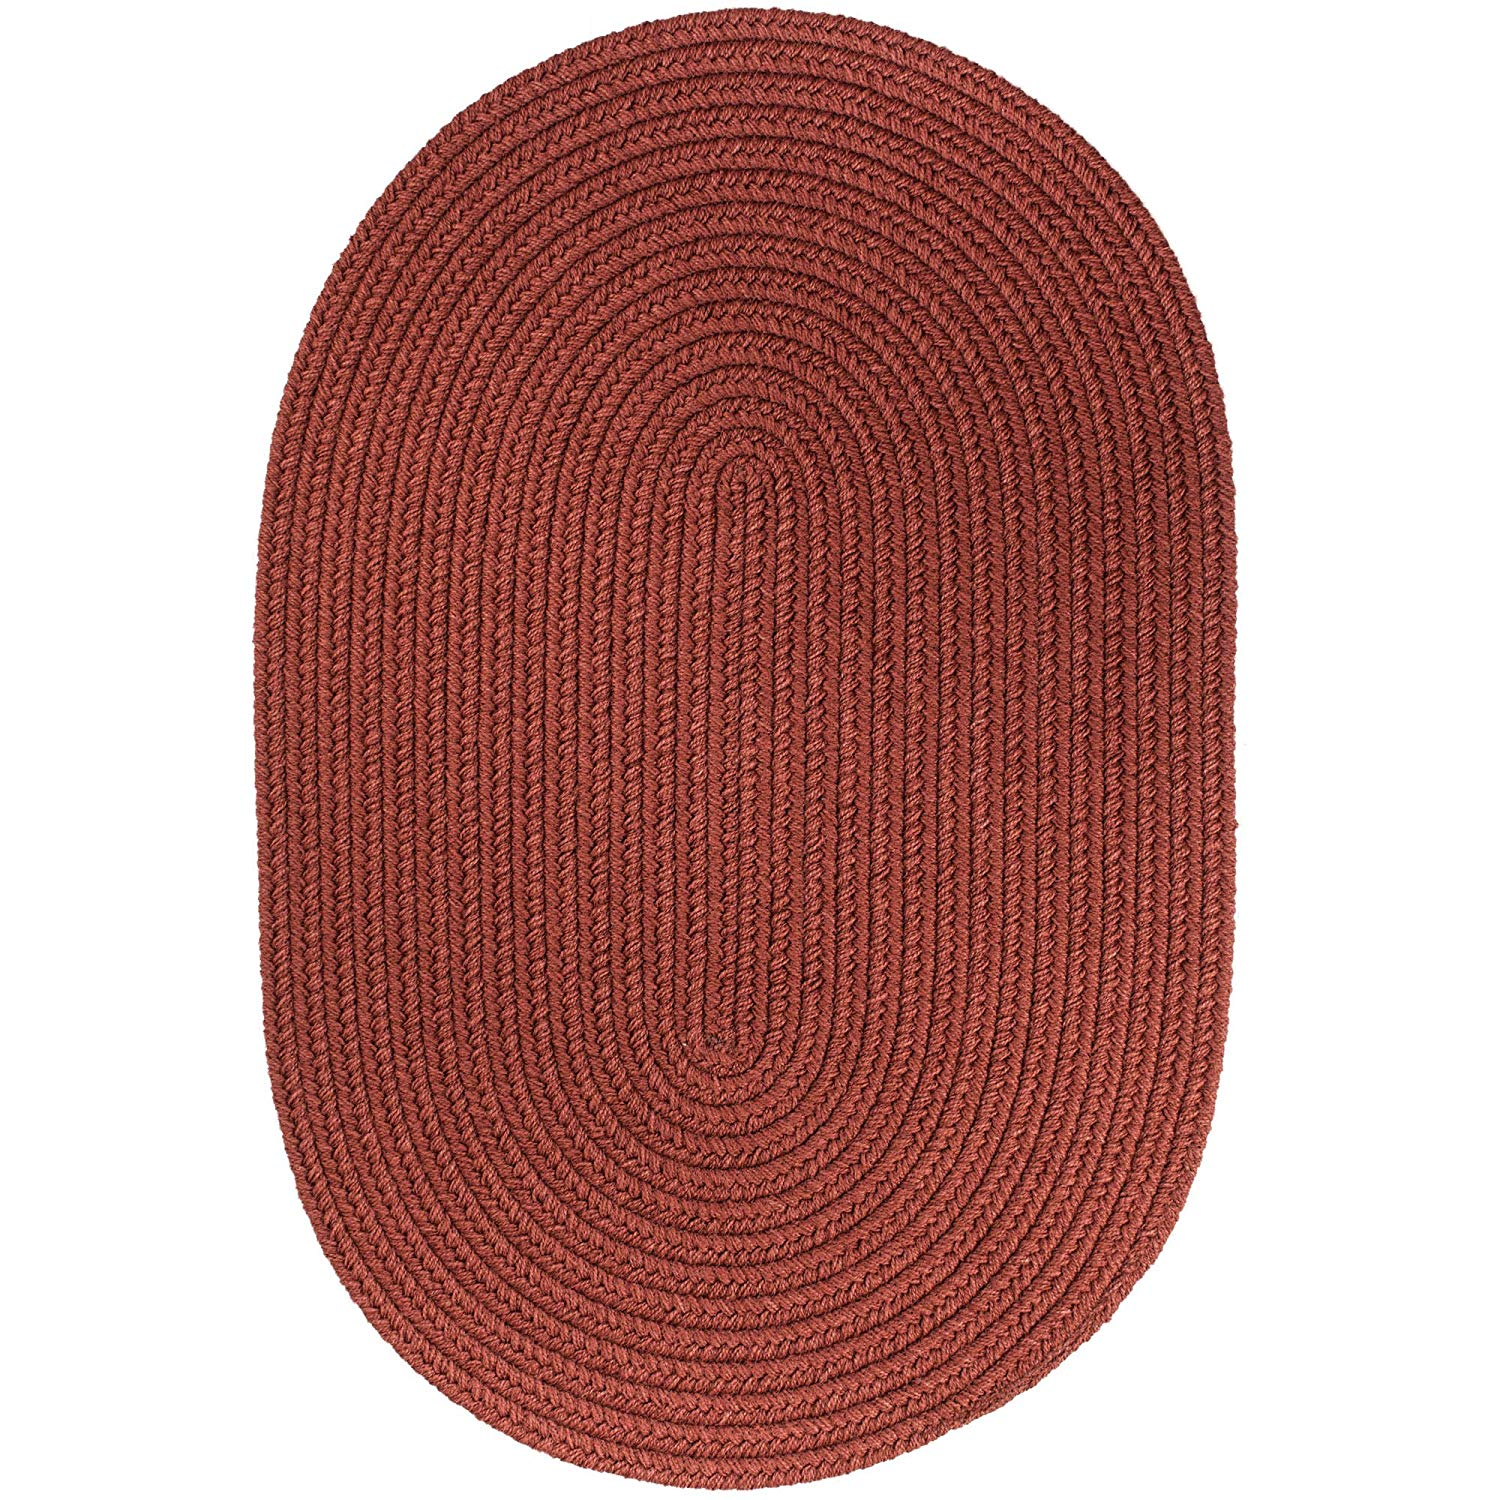 Super Area Rugs Maui Braided Rug Indoor Outdoor Rug Washable Reversible Red Patio Porch Kitchen Carpet, 10' X 13' Oval